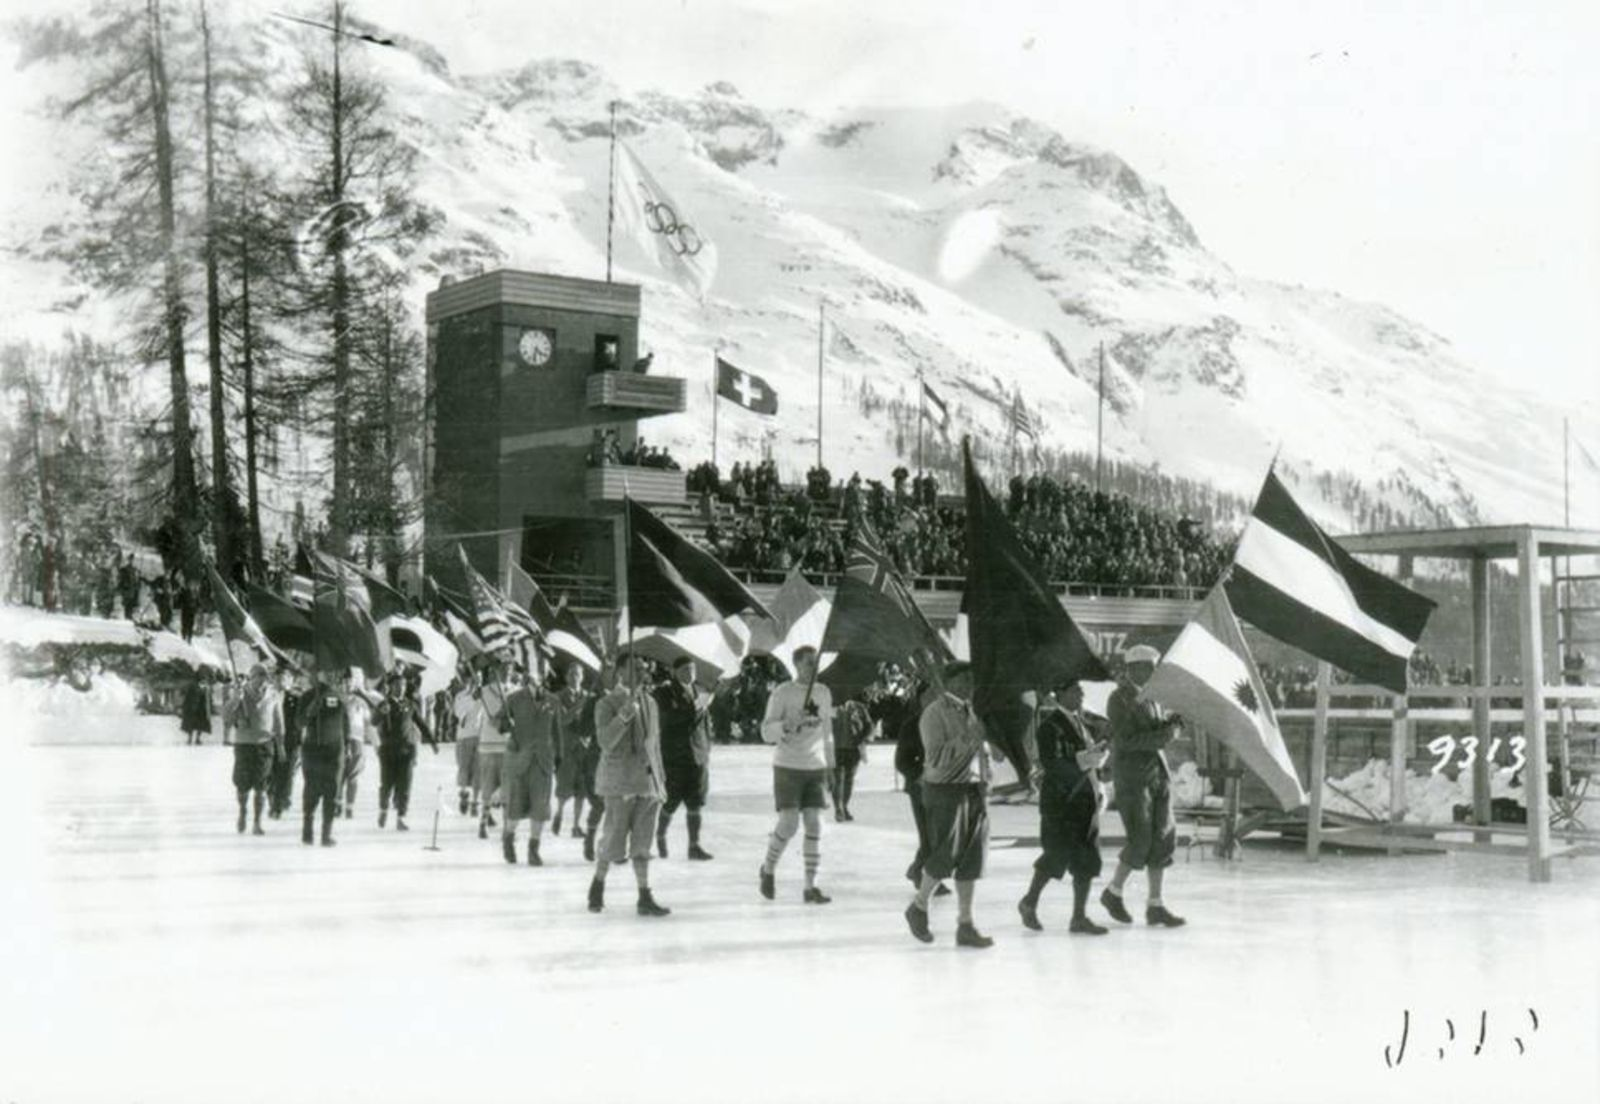 The opening ceremony at the Winter Games in St. Moritz, 1928. This mass event made the beautiful region of St. Moritz a touristic attraction.